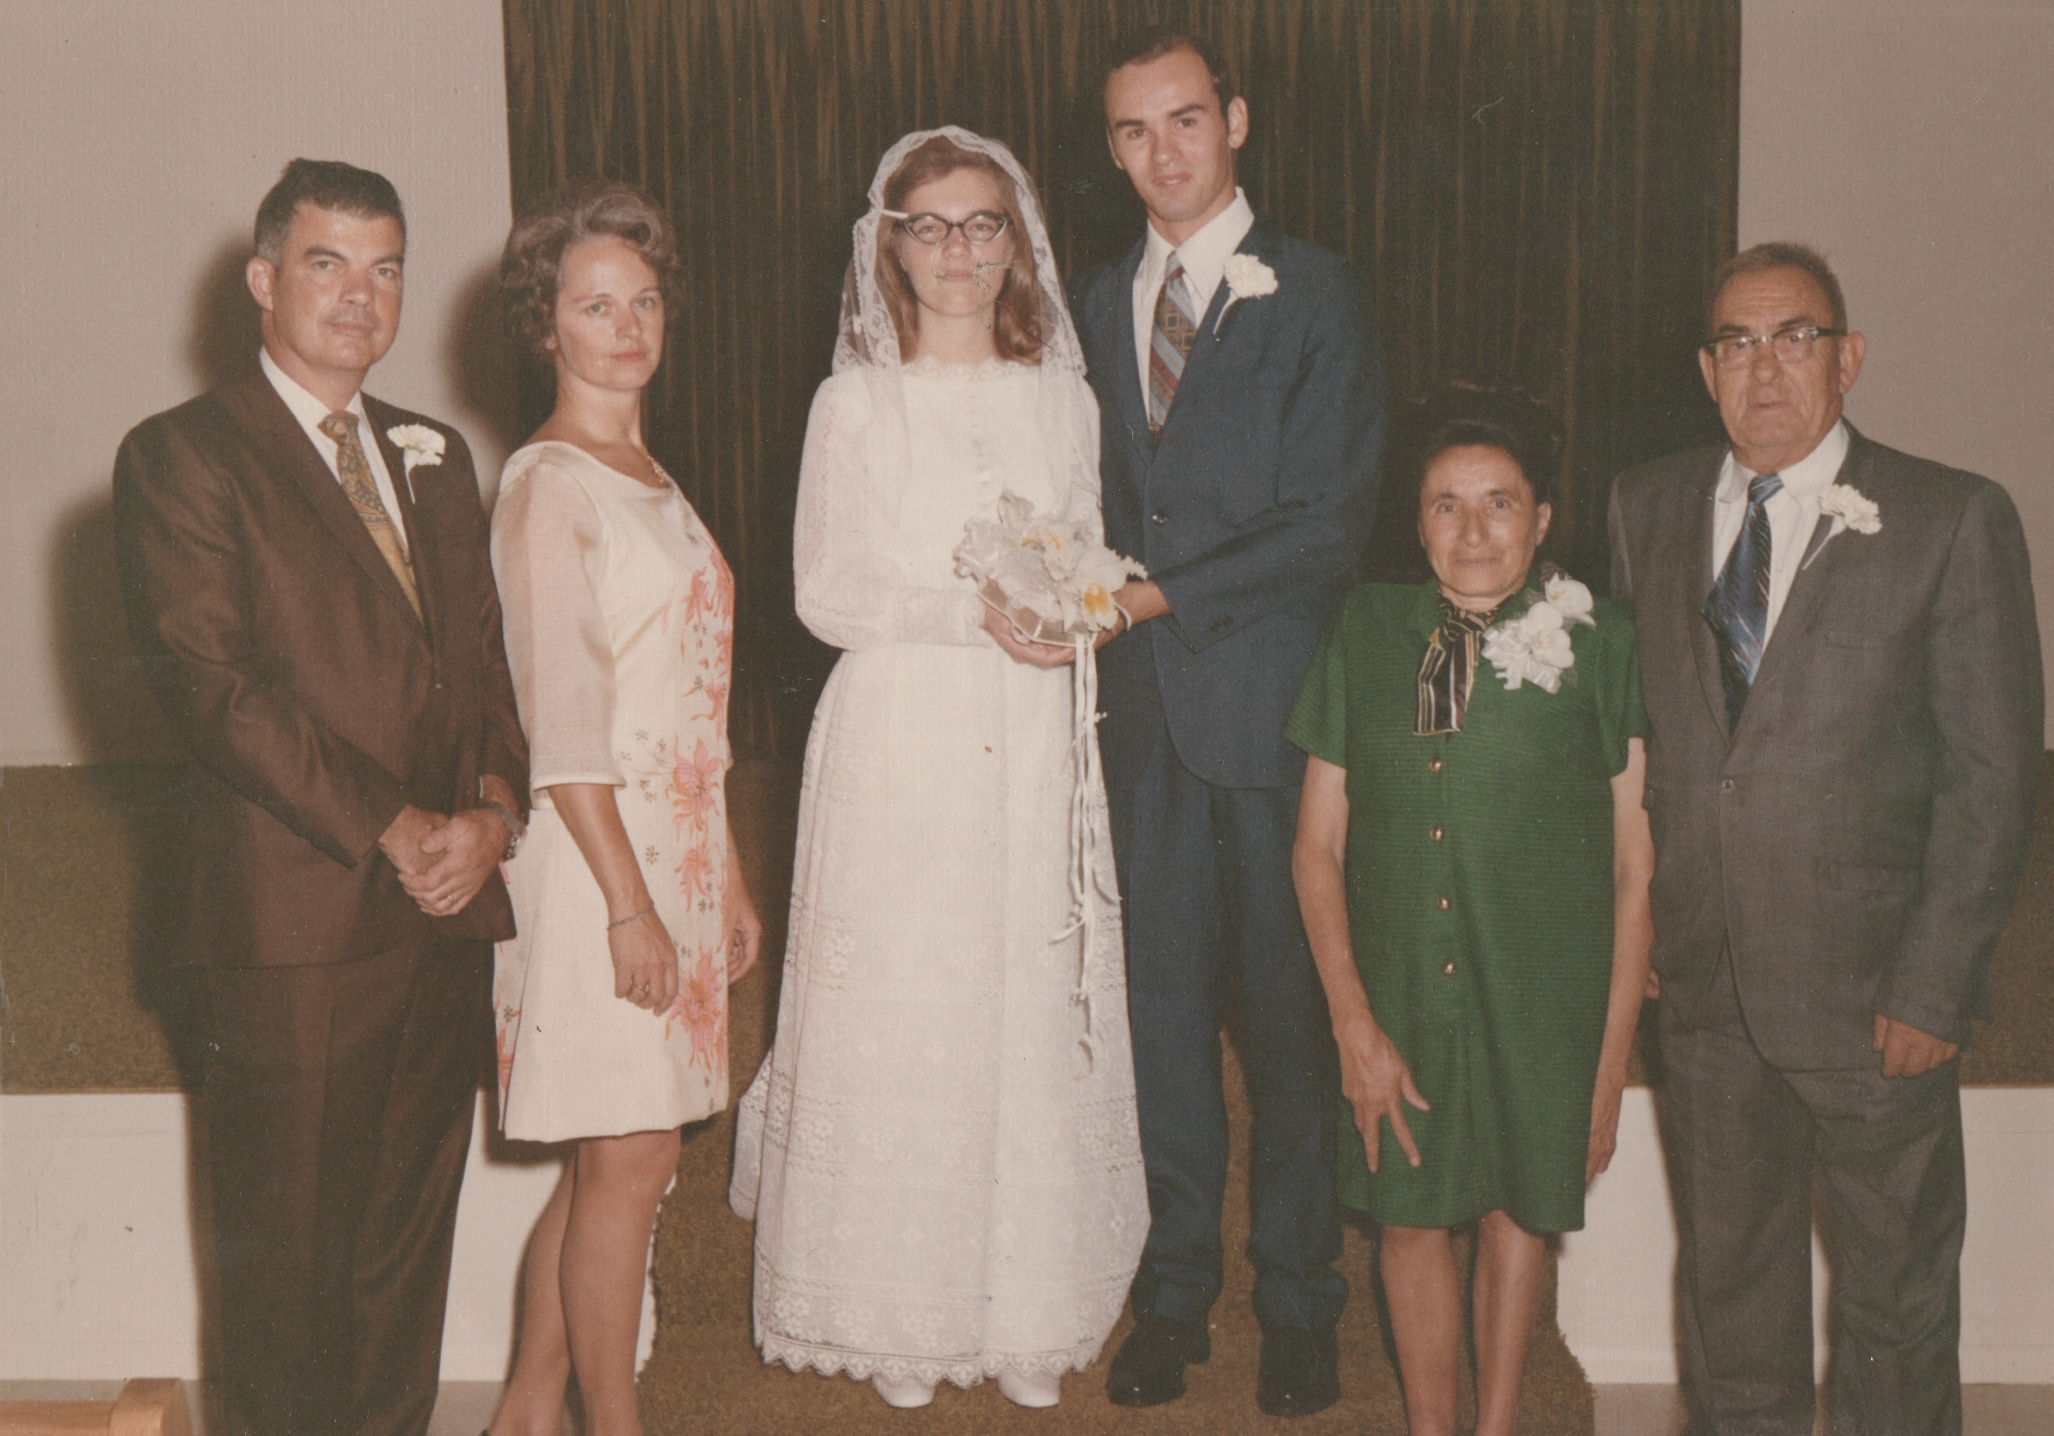 1971-09-04 - Saturday - Wedding Photos-04.png